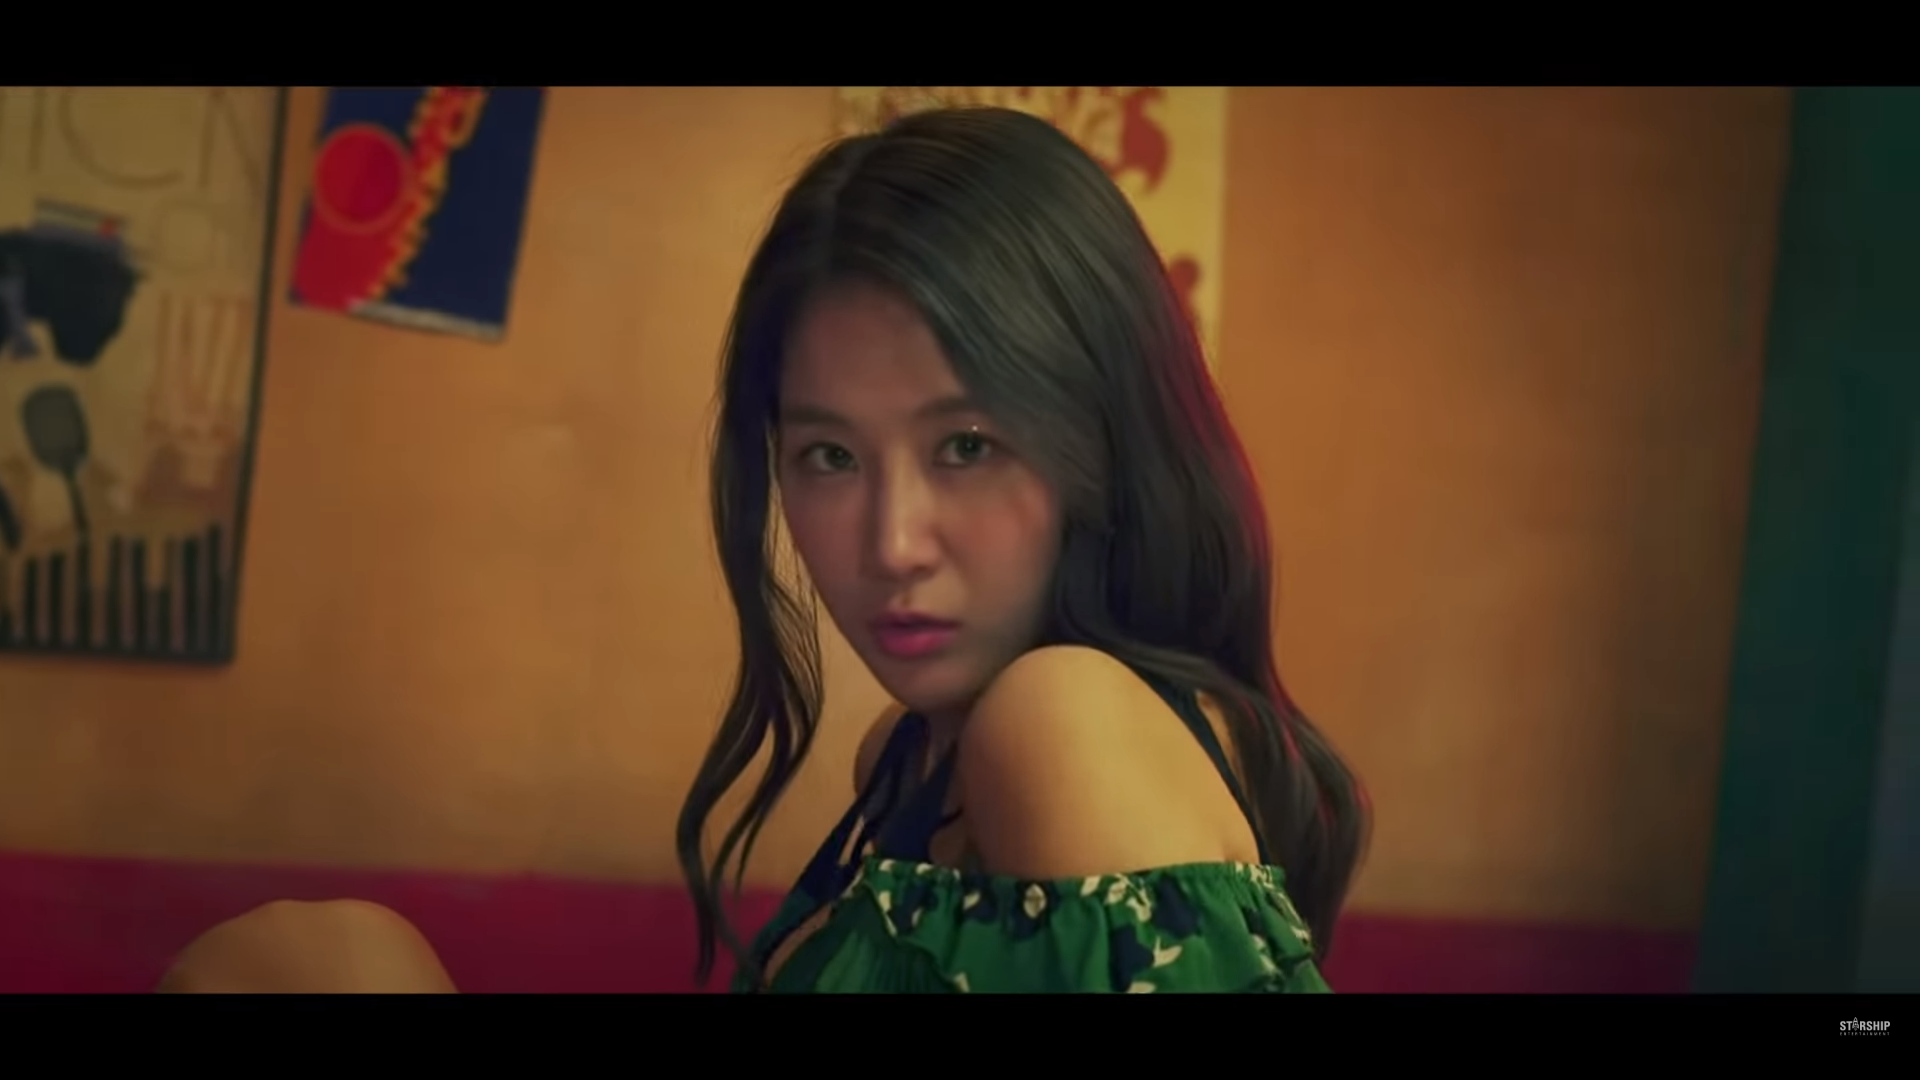 """WATCH: Soyou Is Out To Seduce In New """"All Night"""" MV Featuring Sik-K"""